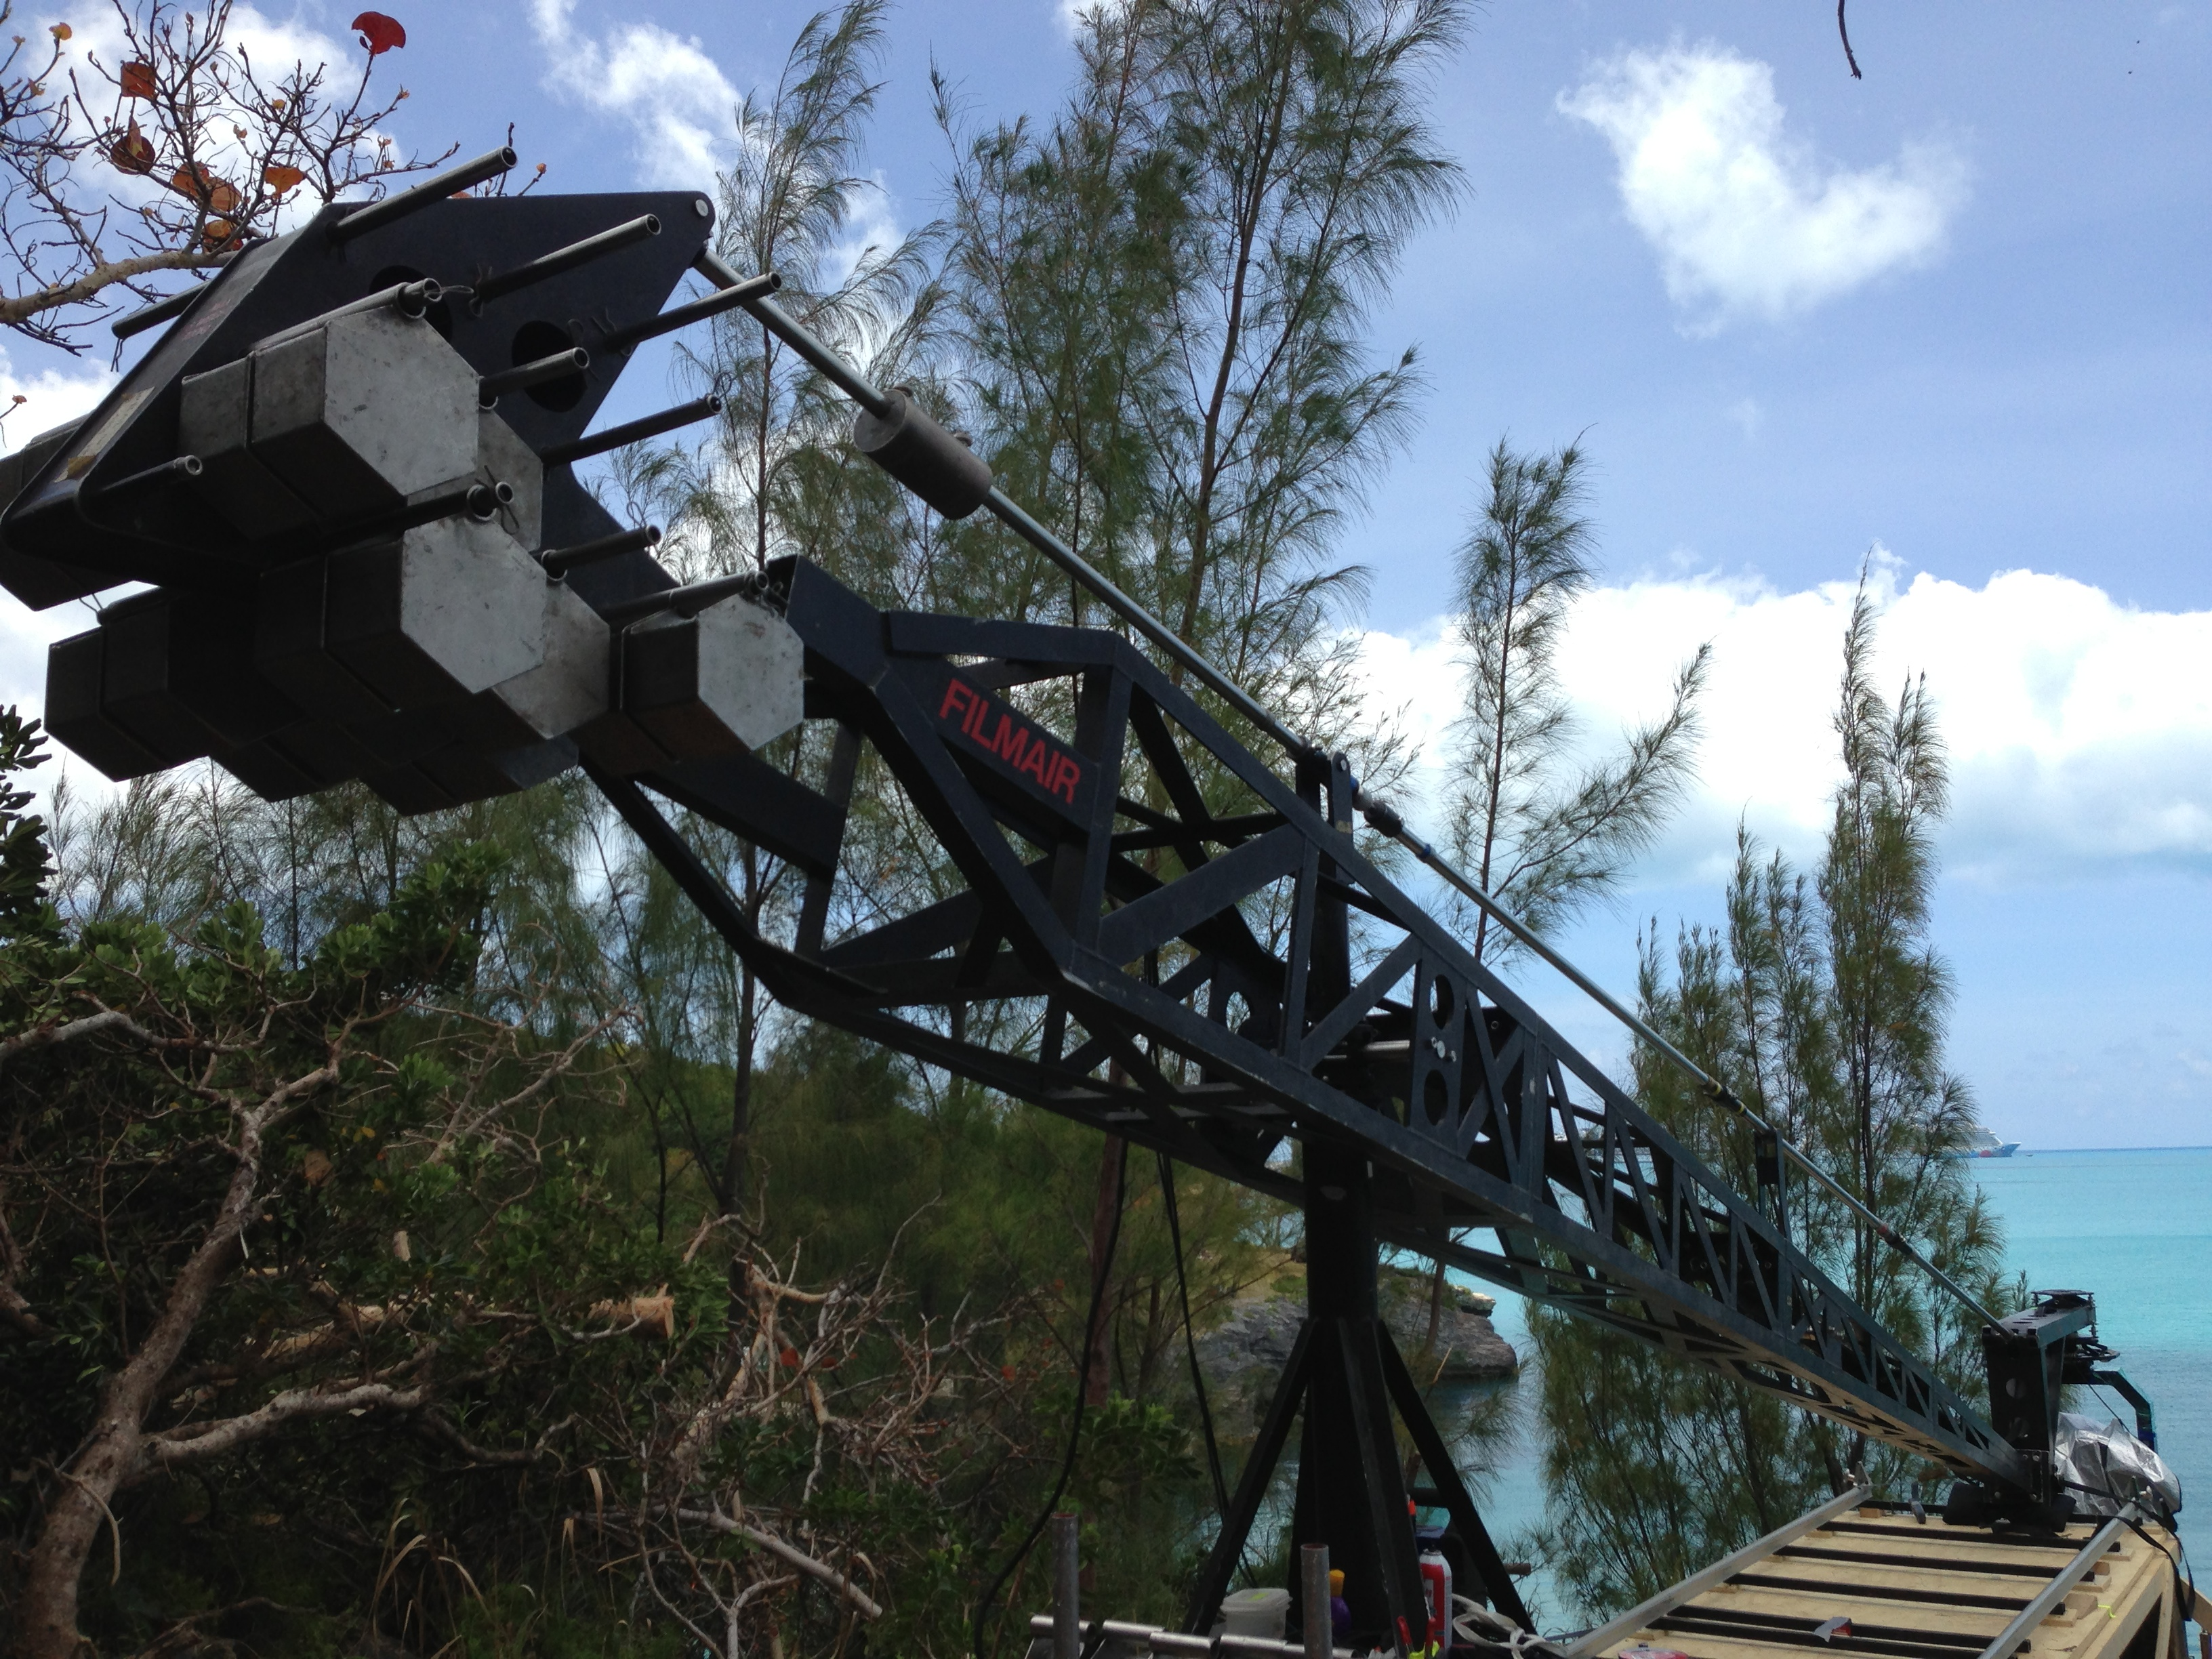 TECHNO CRANE AT THE TOP OF THE WORLD